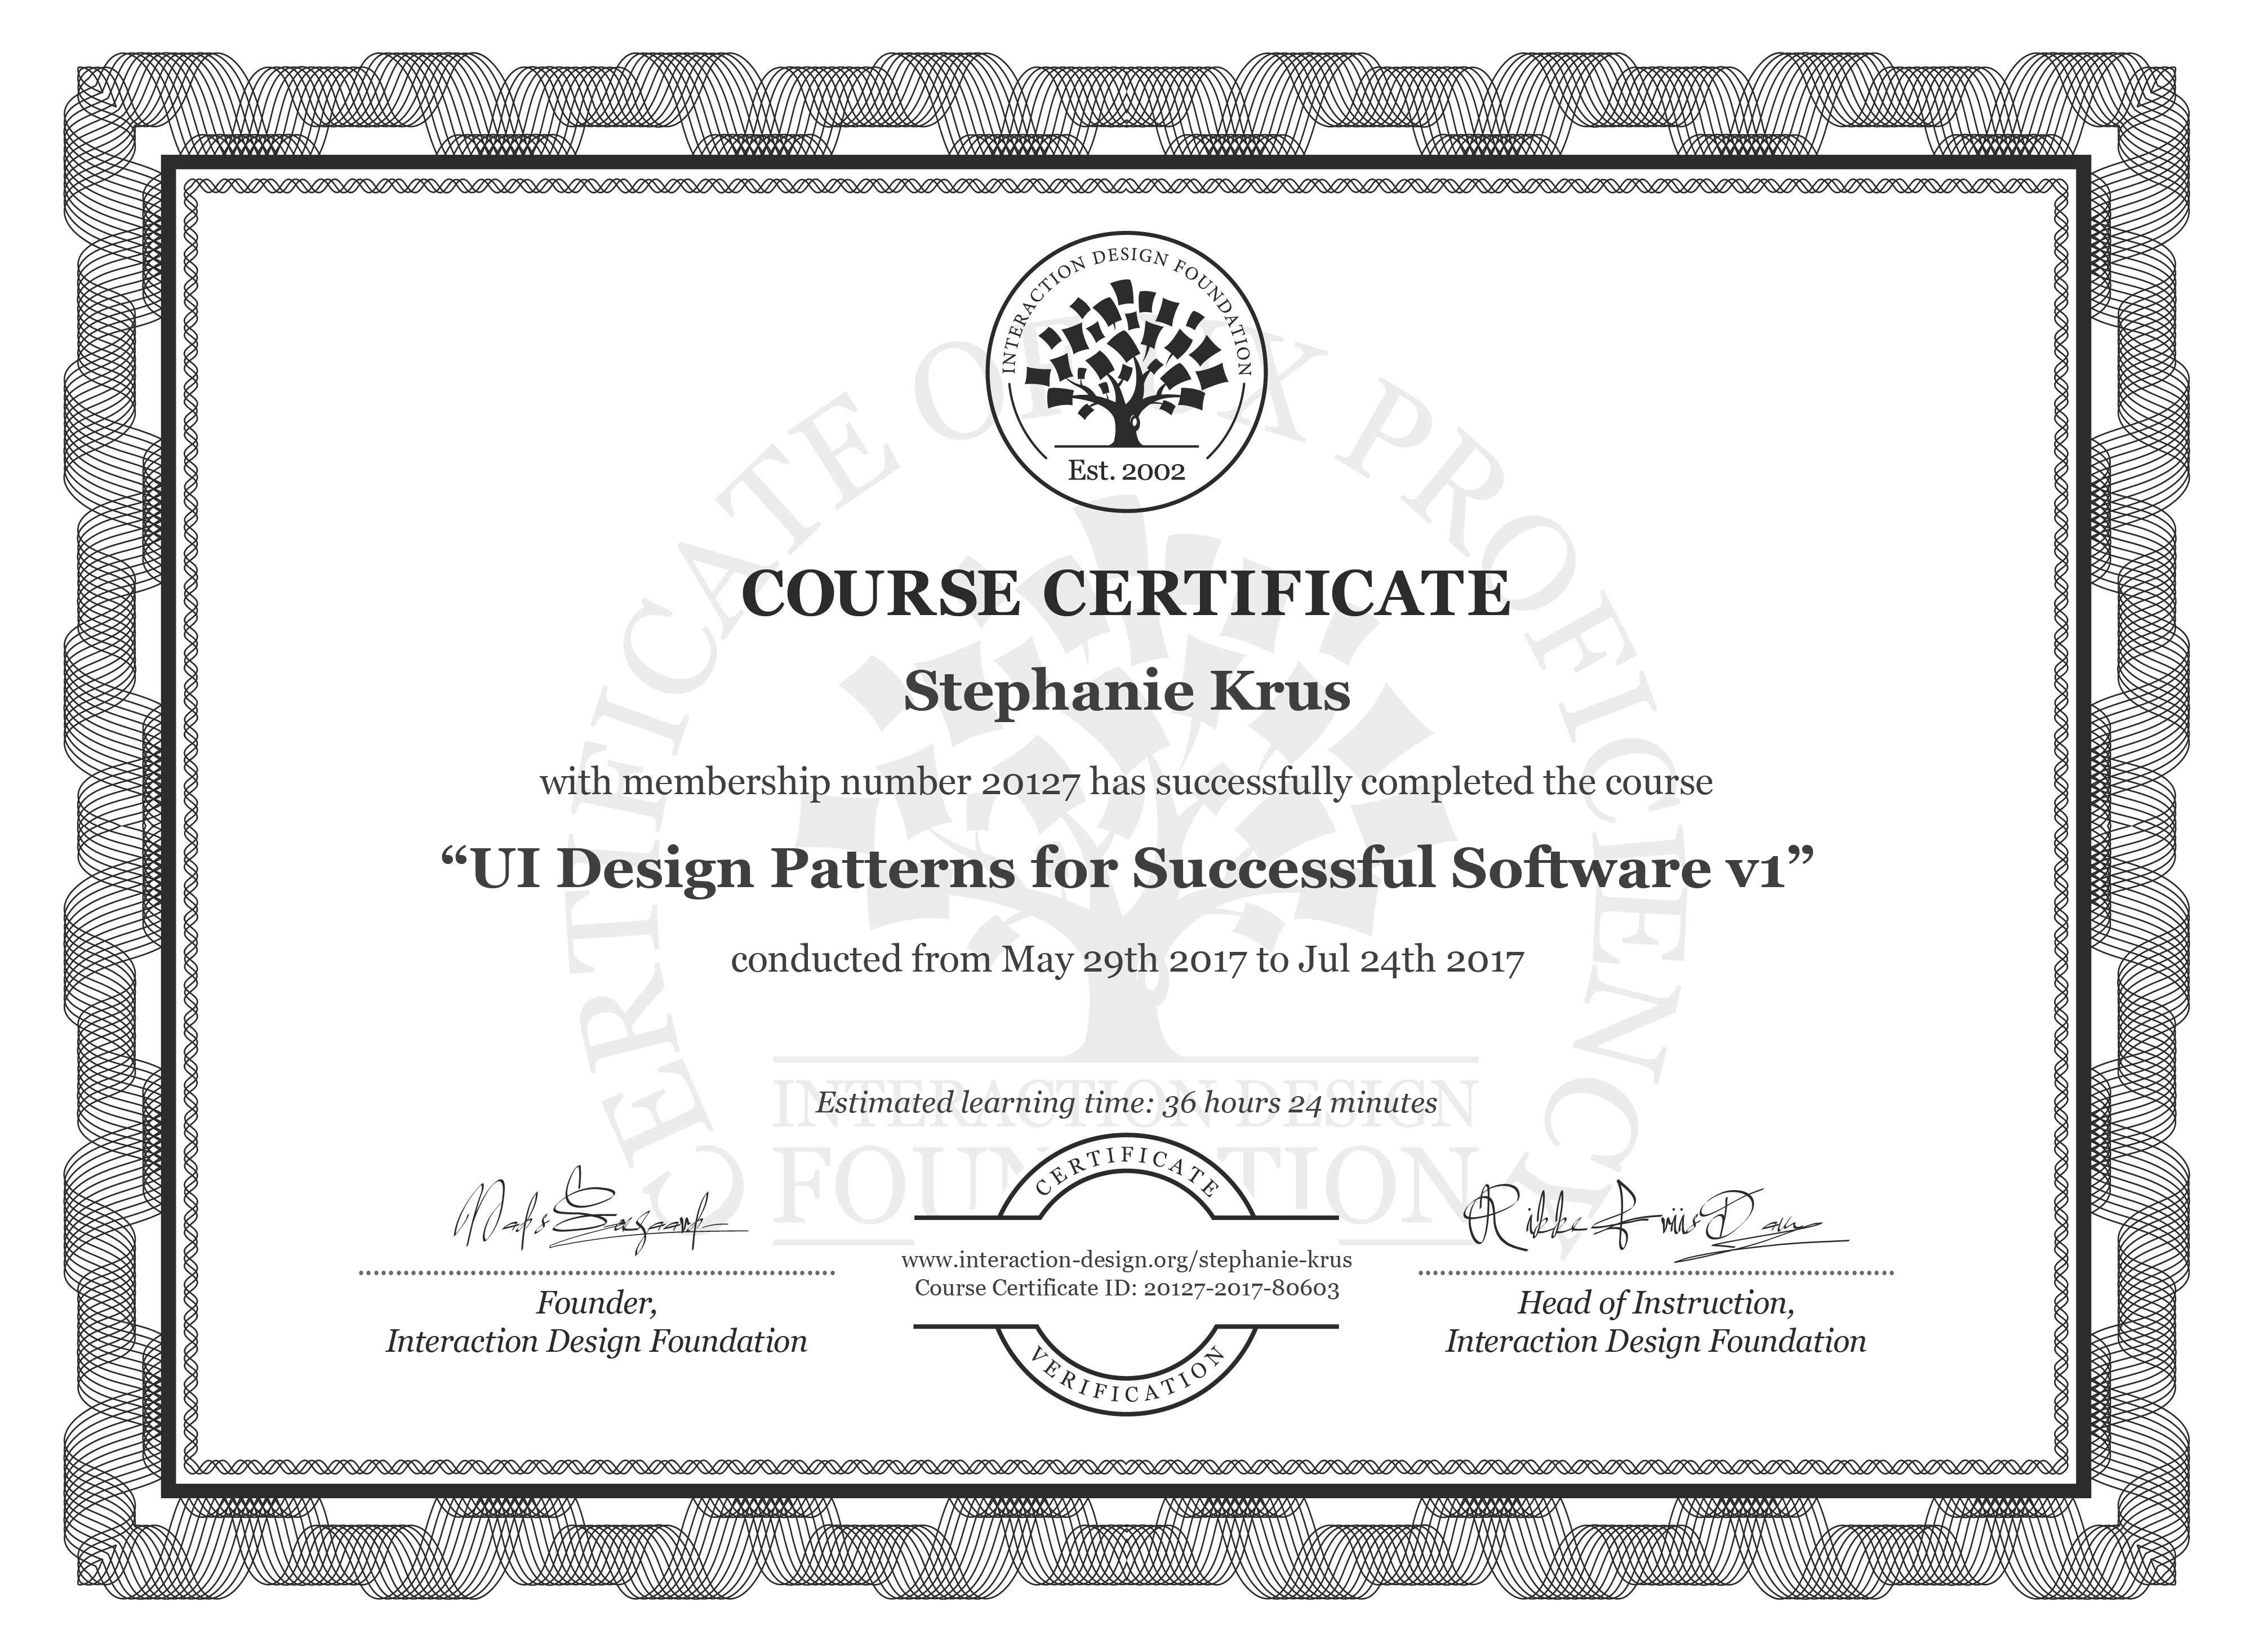 Stephanie Krus: Course Certificate - UI Design Patterns for Successful Software